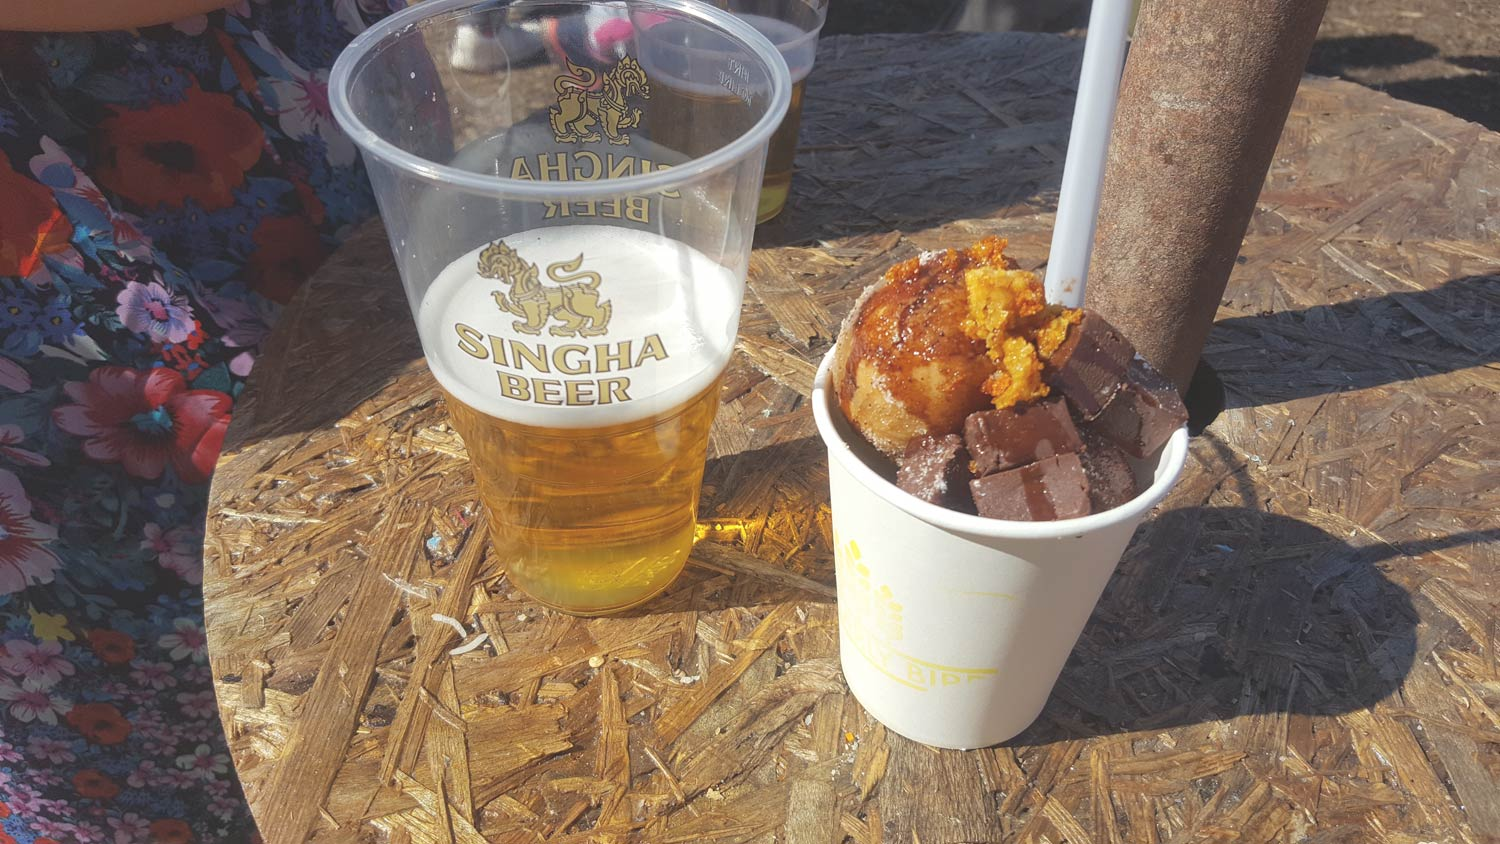 Review of the mini dough bites with chocolate sauce at Street Food Circus in Cardiff